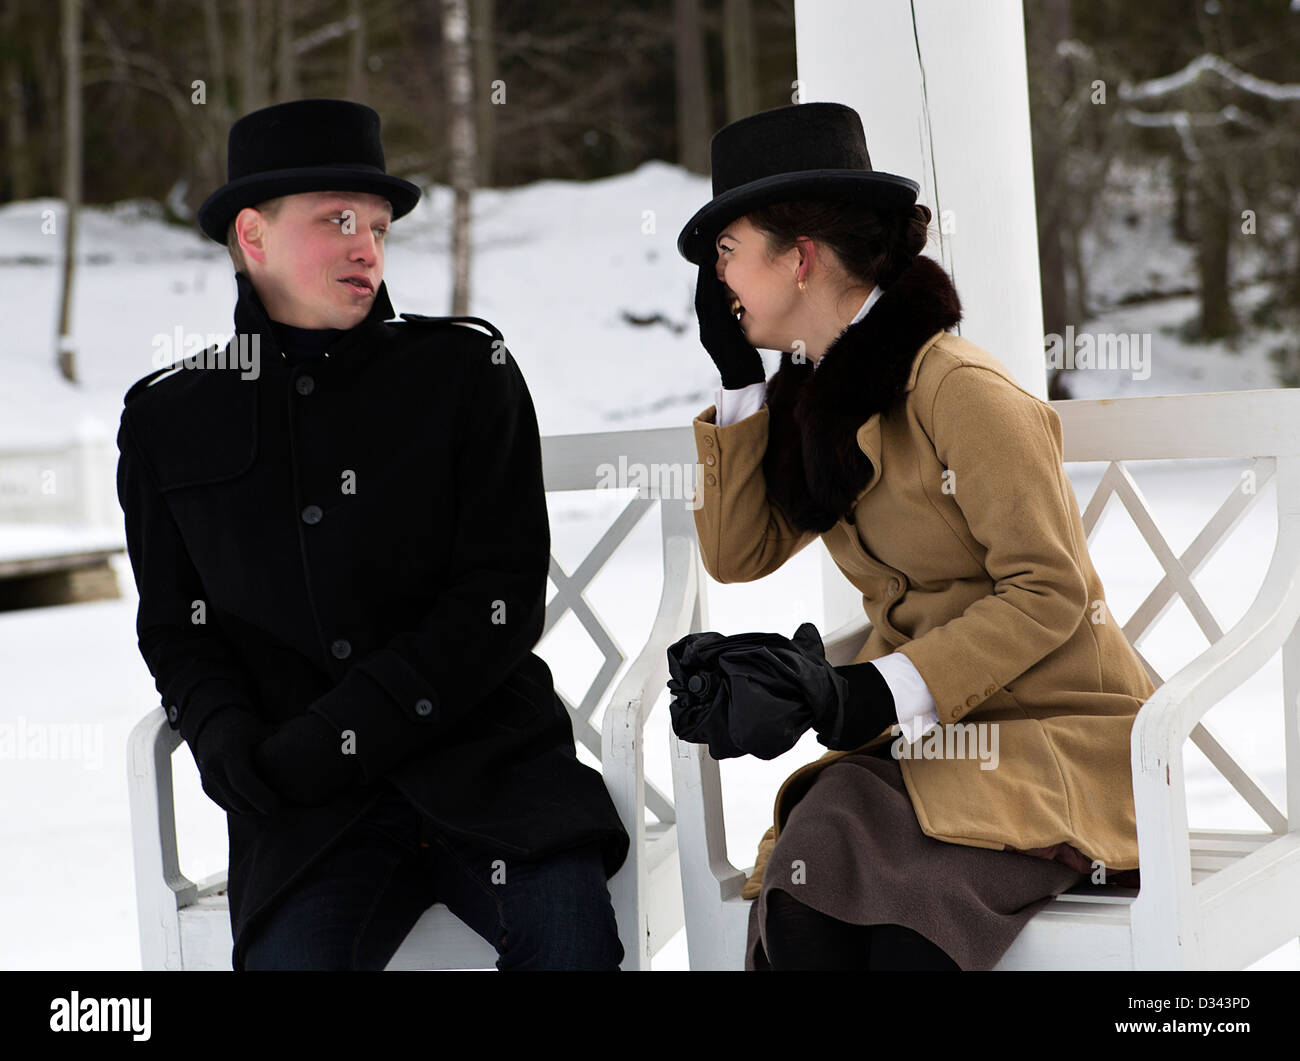 Man and woman exchange some opinion about something - Stock Image